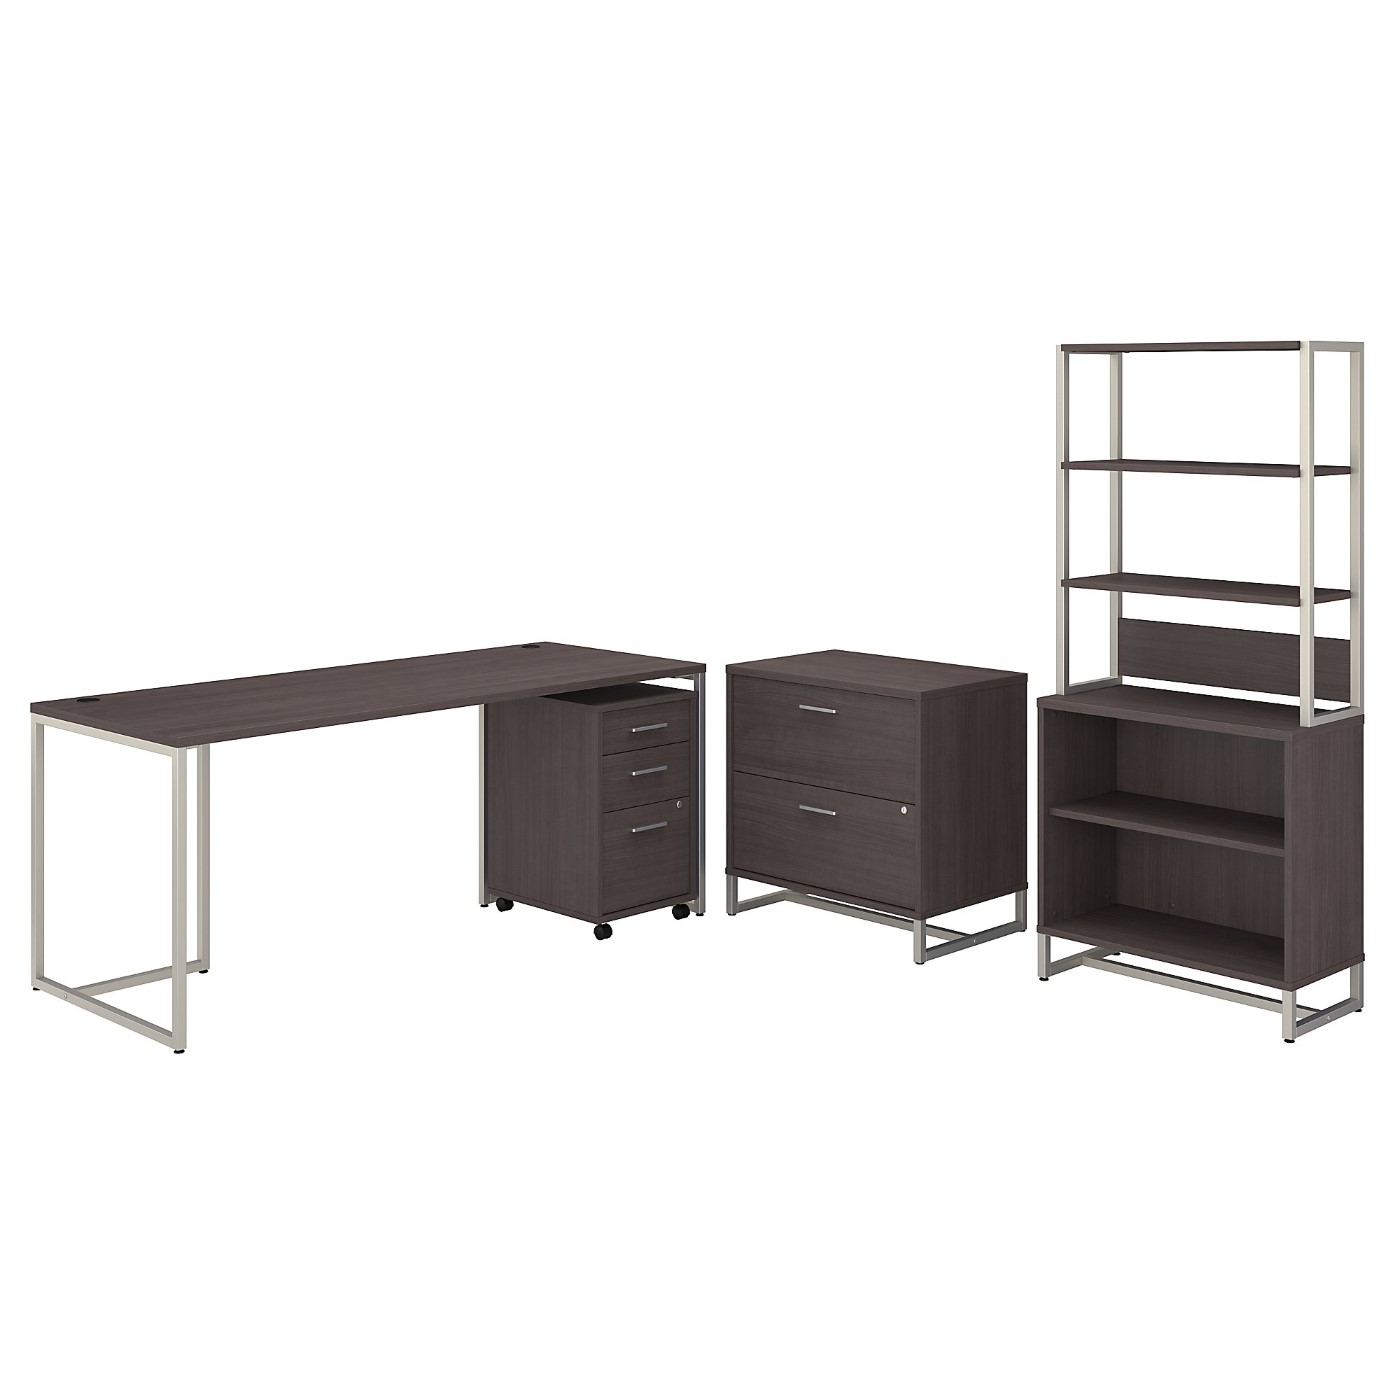 OFFICE BY KATHY IRELAND® METHOD 72W TABLE DESK WITH FILE CABINETS AND BOOKCASE. FREE SHIPPING